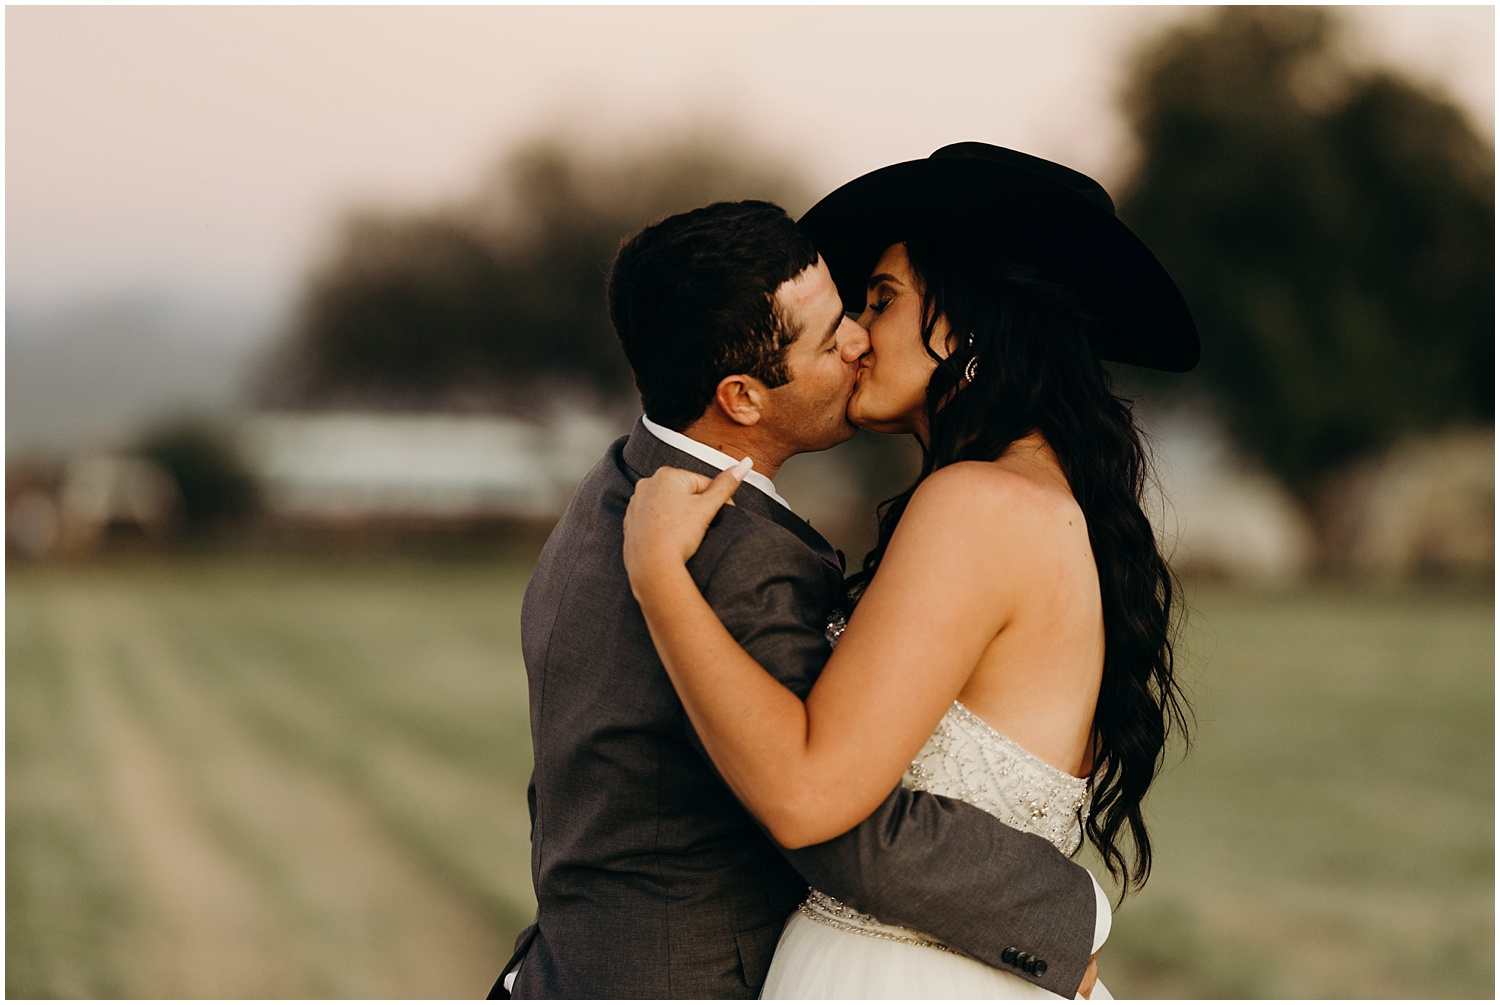 Groom puts cowboy hat on his bride and kisses her.